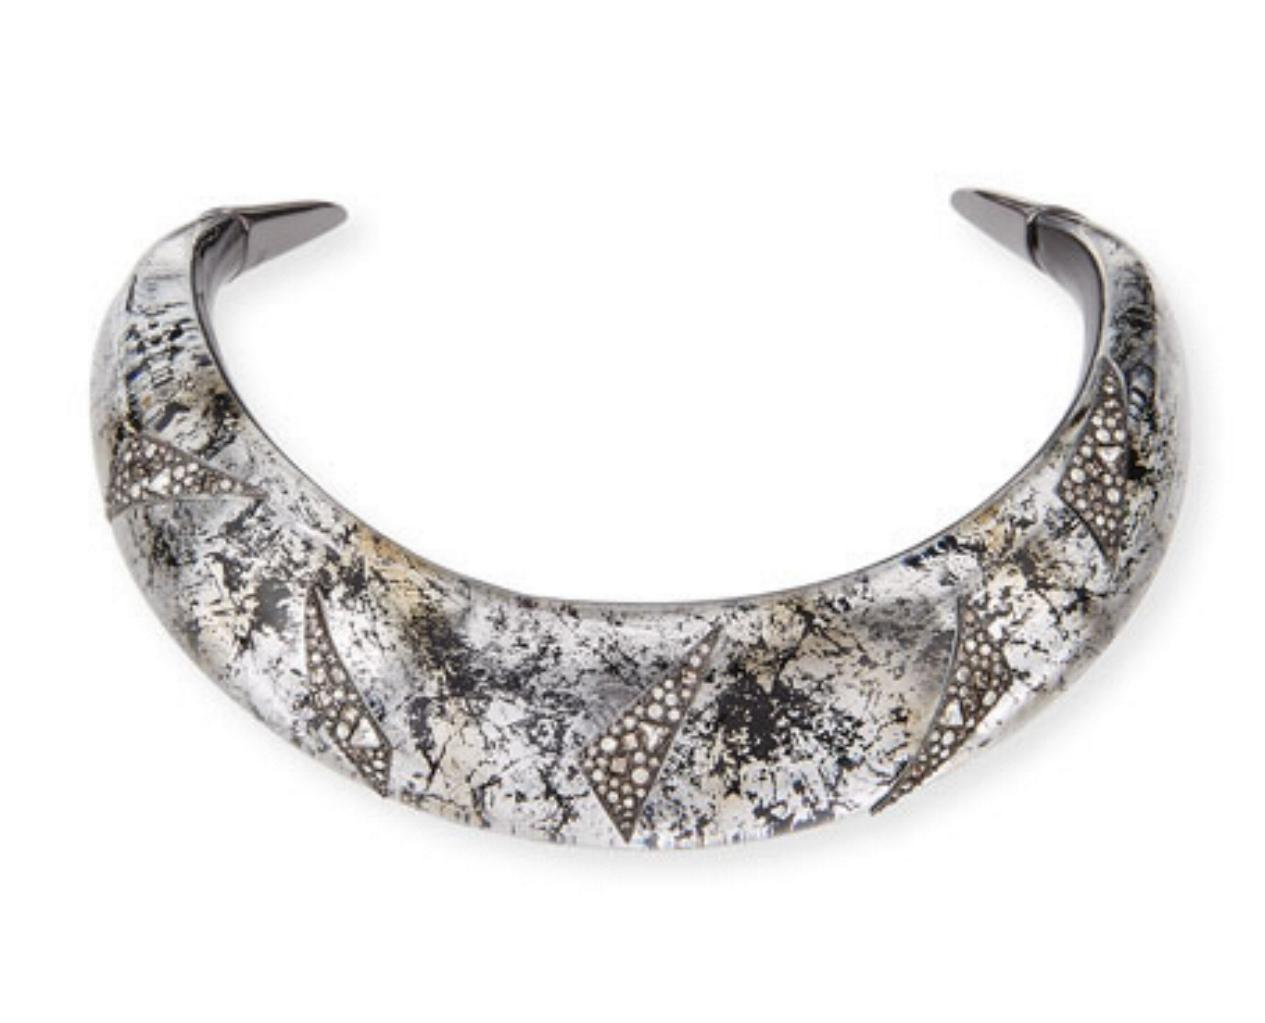 Alexis Bittar Liquid Medium Collar Necklace with Crystal Shard Detail nXQ4Ot